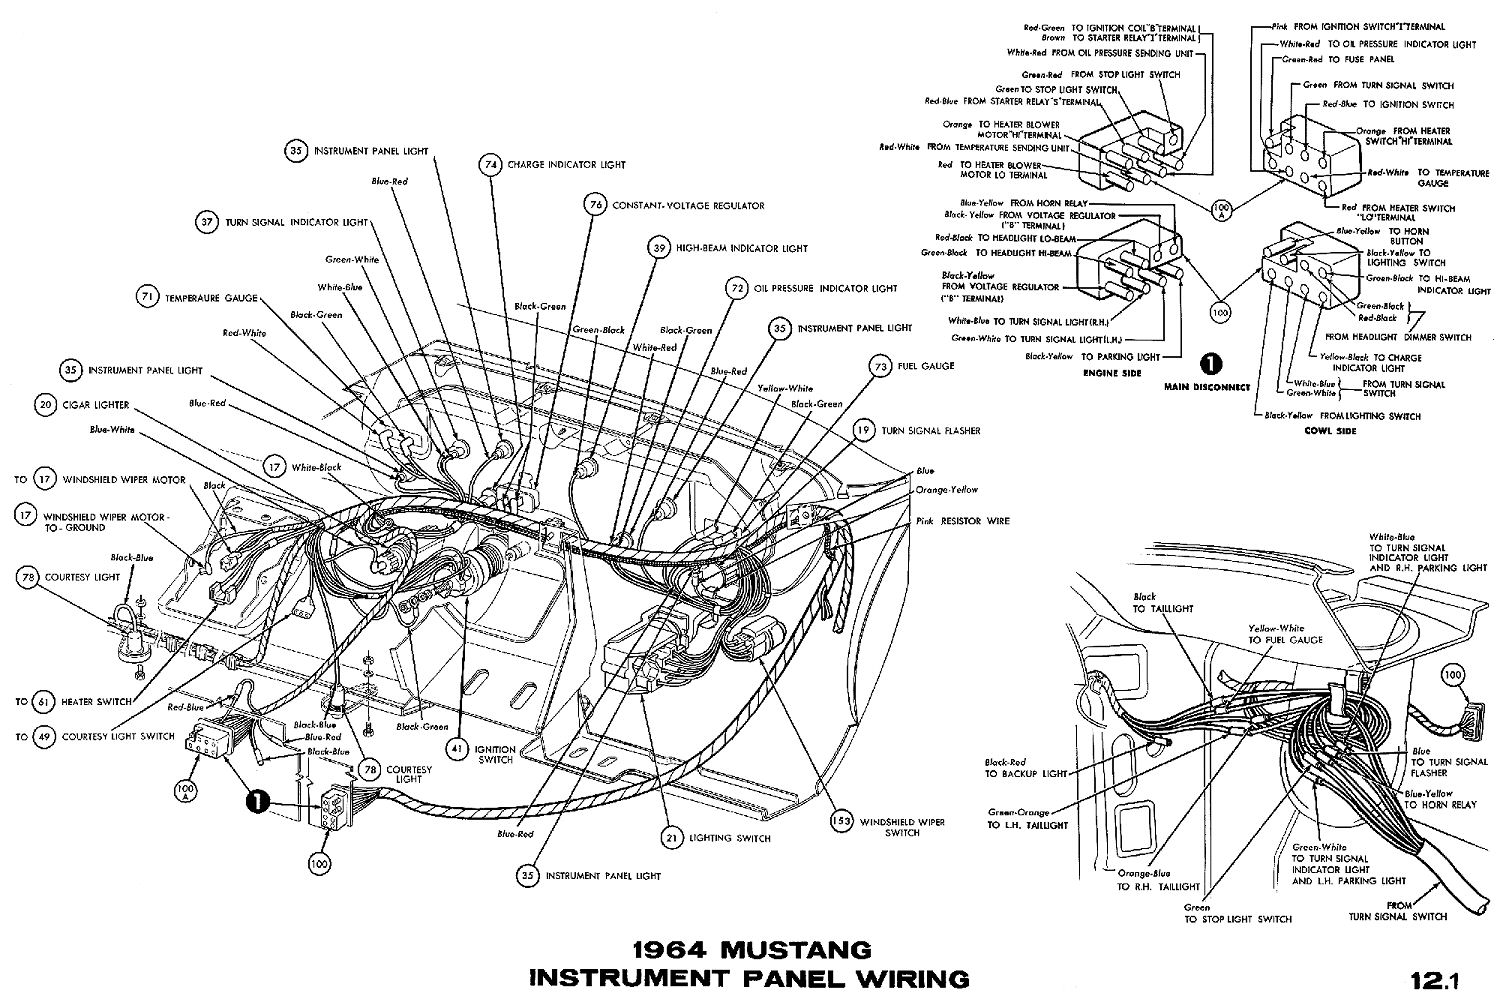 1967 Pontiac Wiring Diagrams Automotive Just Wirings Diagram 68 Gto Impala Dash Panel Schematic Rh Theodocle Fion Com 1966